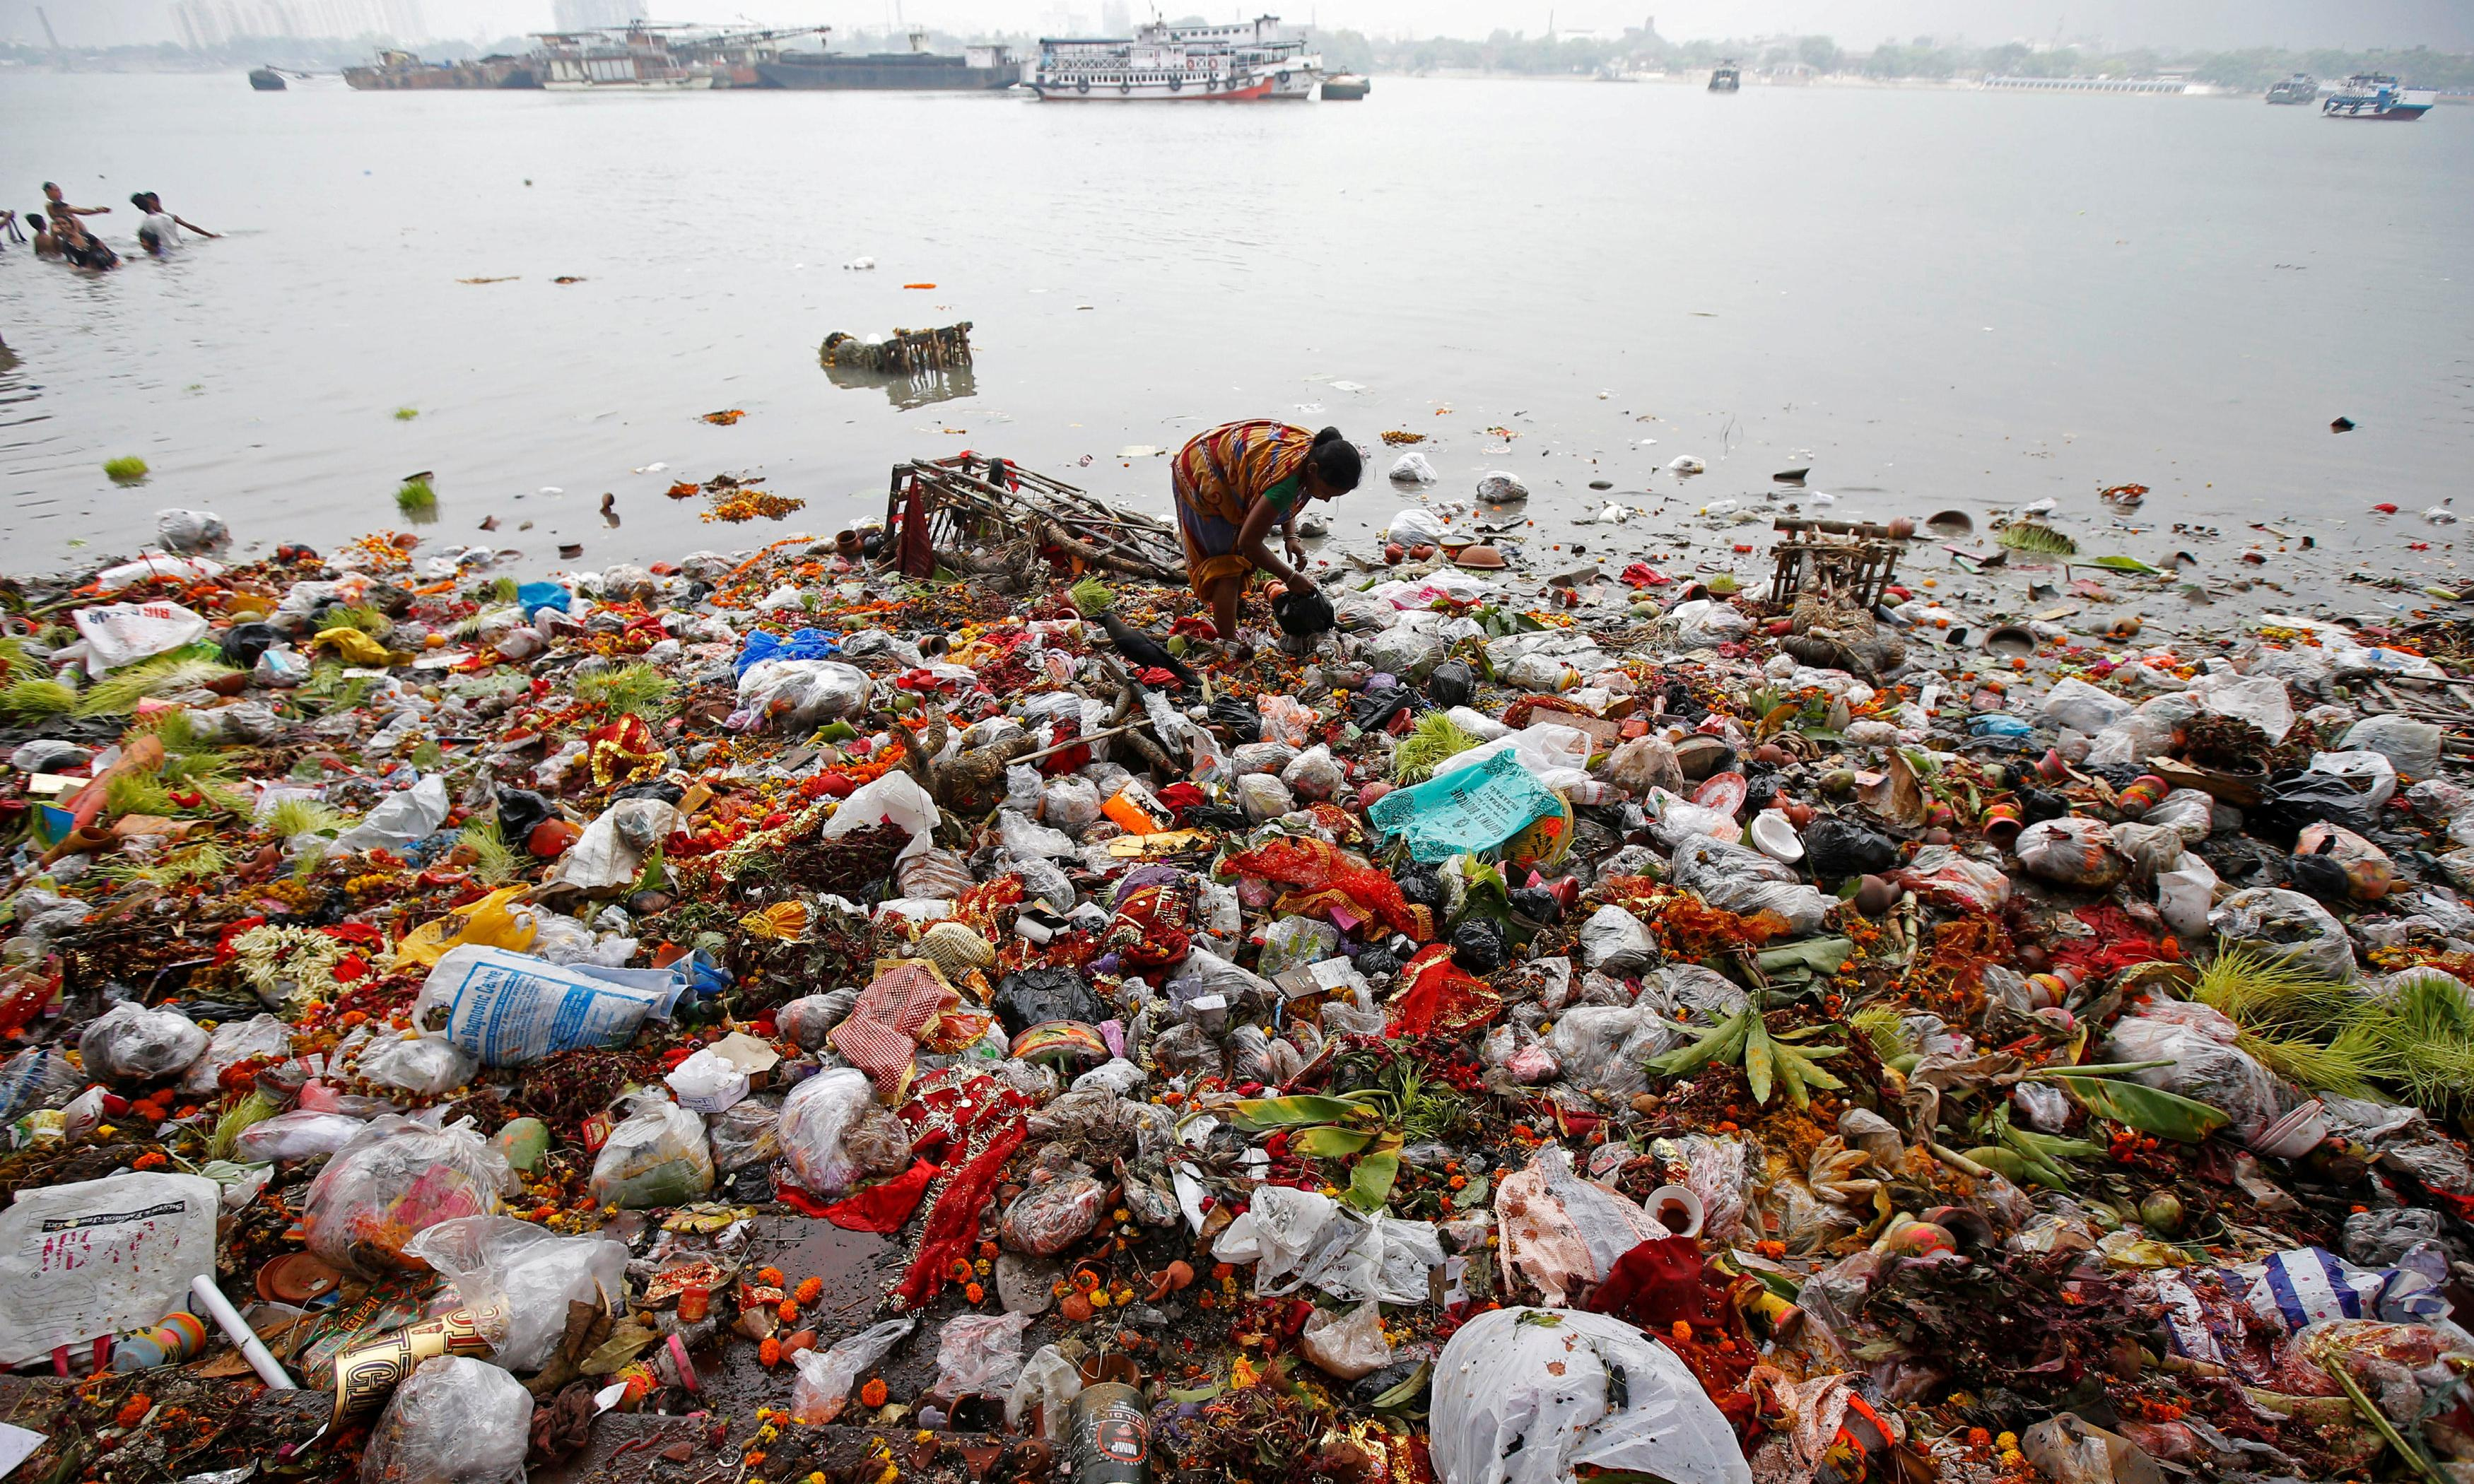 Plastic, poverty and paradox: experts head to the Ganges to track waste